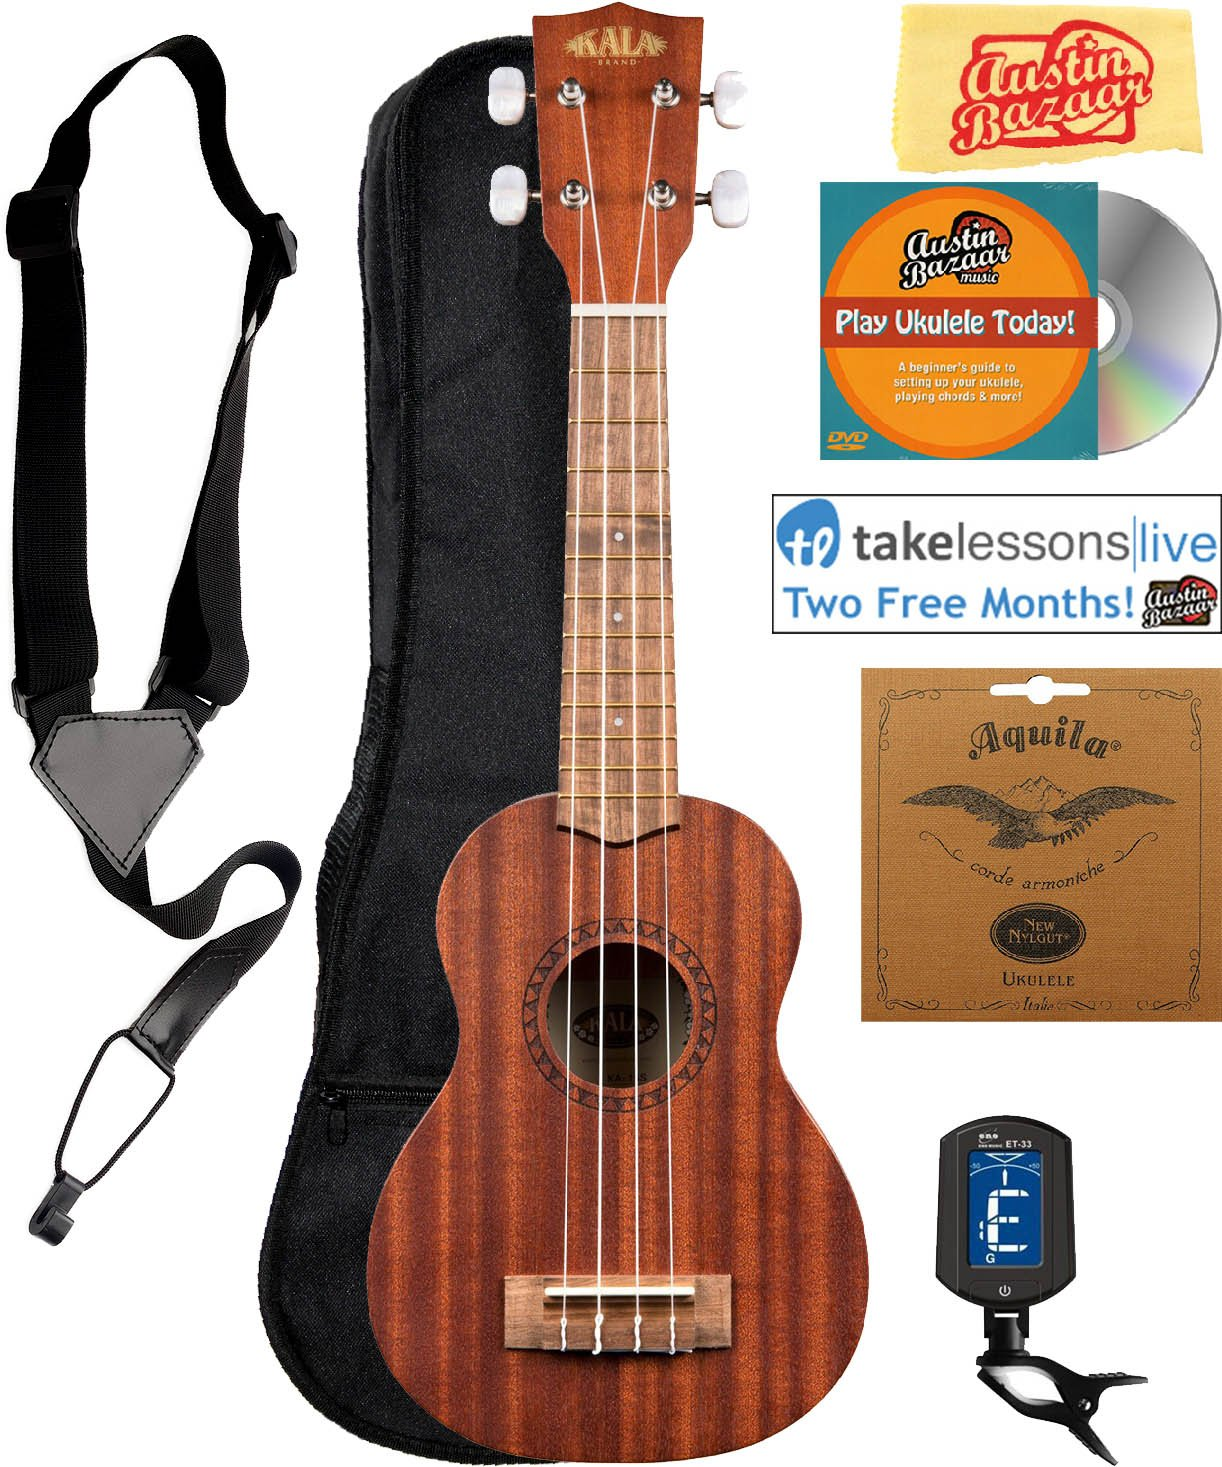 What you need to know in order to adjust the ukulele